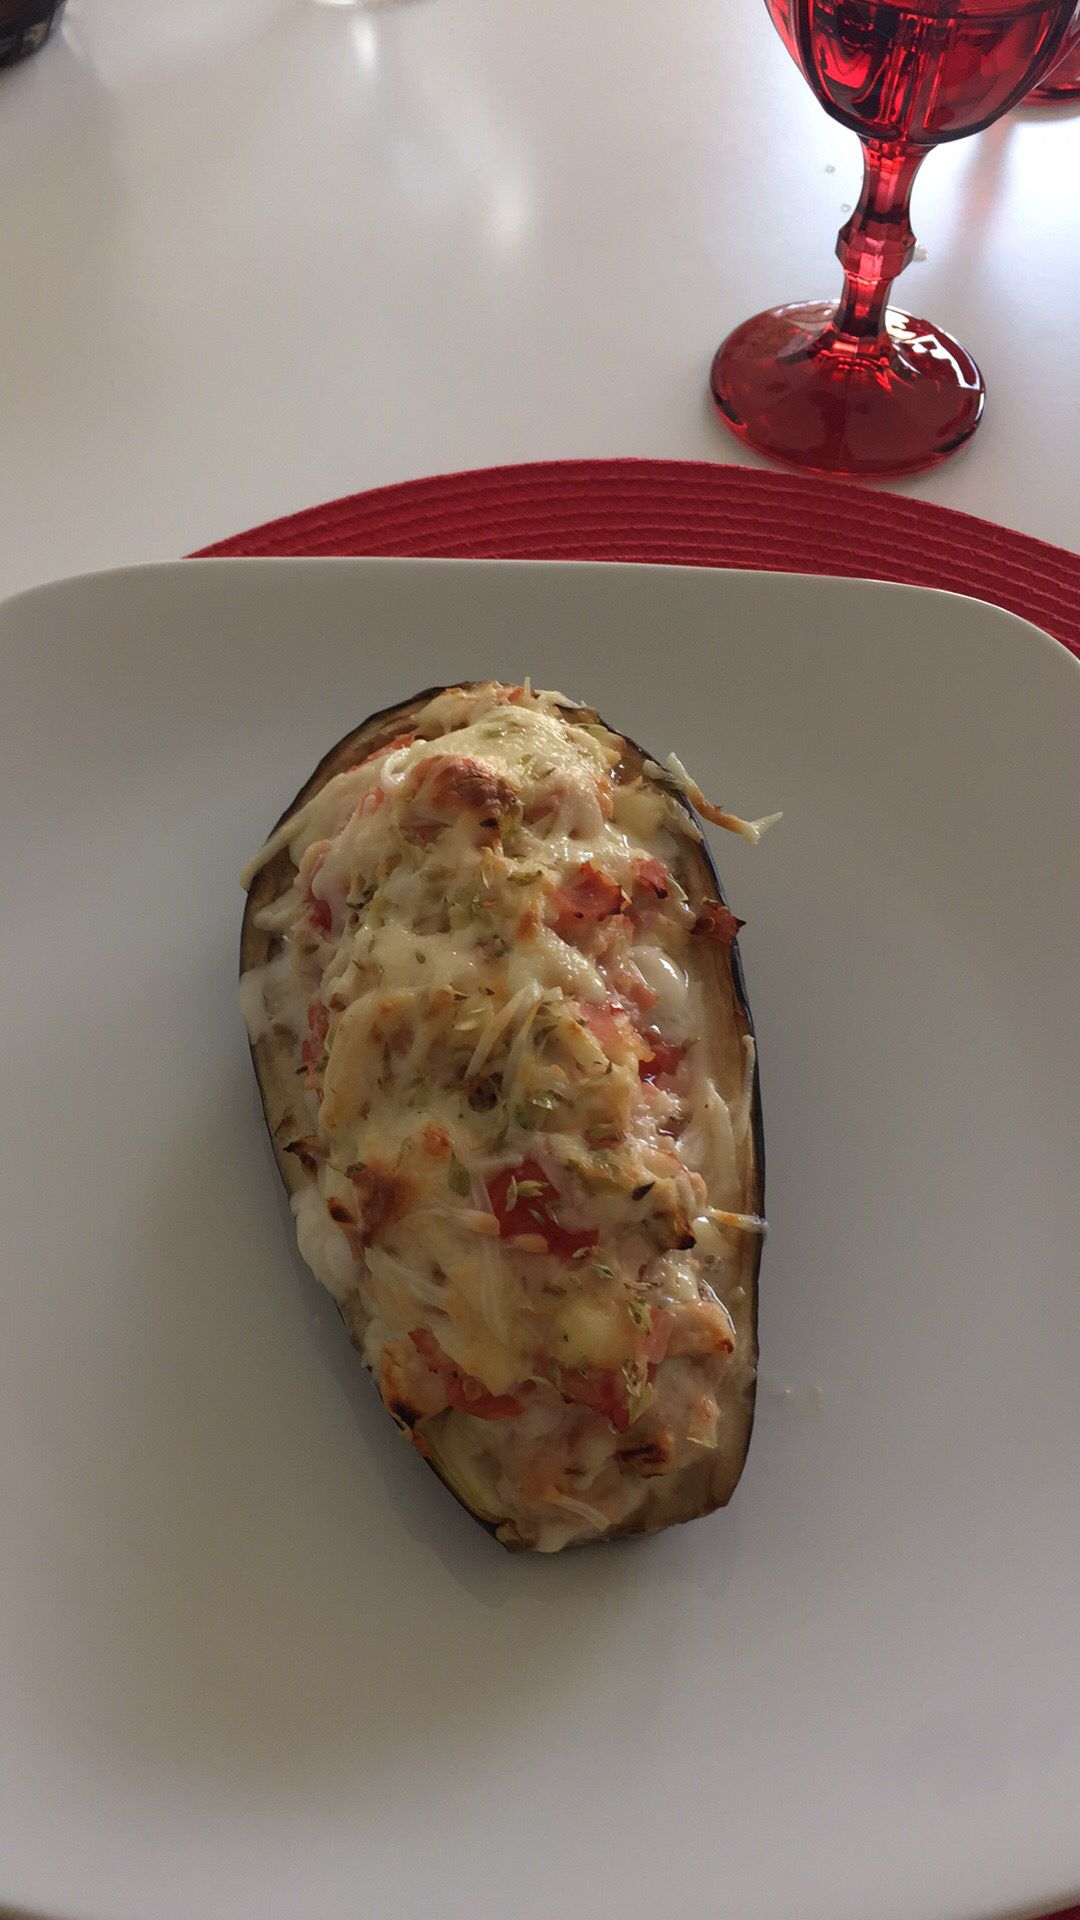 Eggplant stuffed with chicken and vegetables!